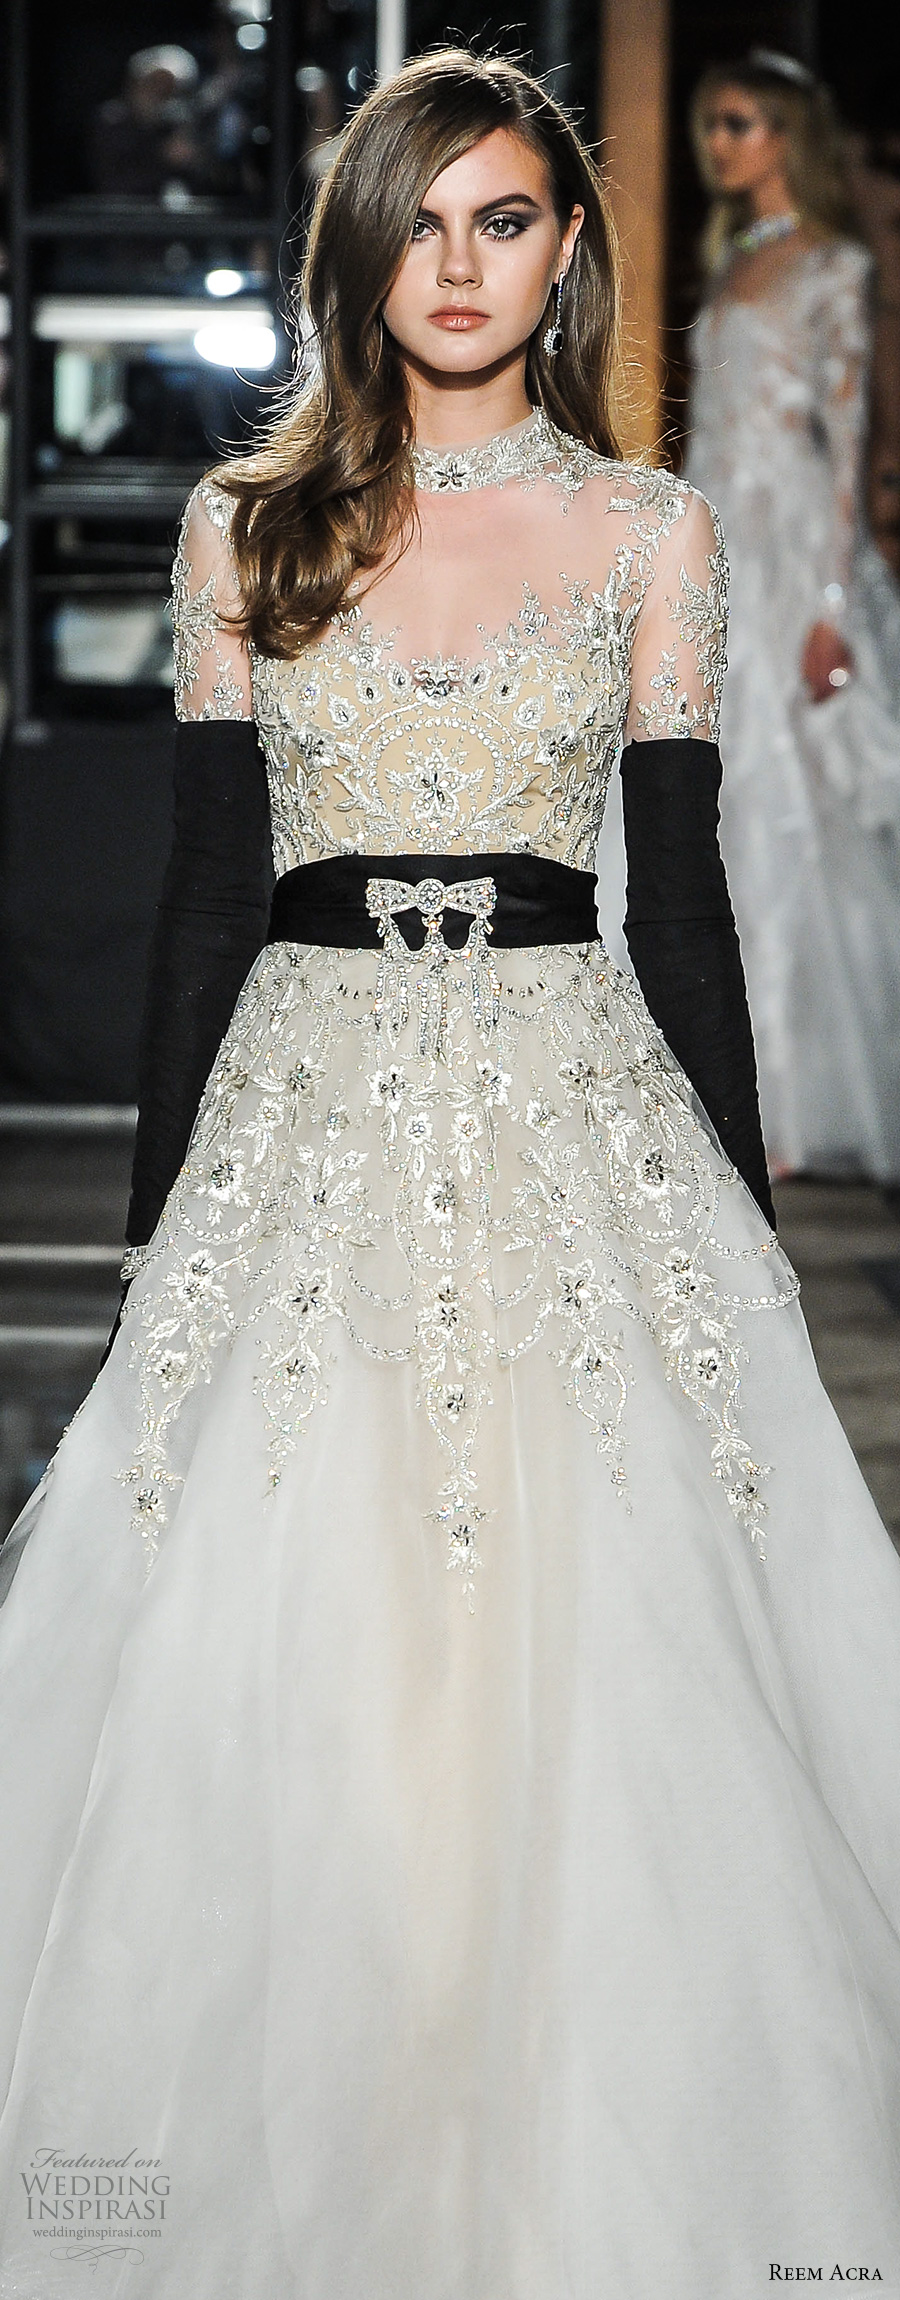 reem acra spring 2018 bridal liong sleeves high neck sweetheart neckline heavily beaded embellishment bodice glamourous a  line wedding dress covered embellished back chapel train (22jeweled) mv